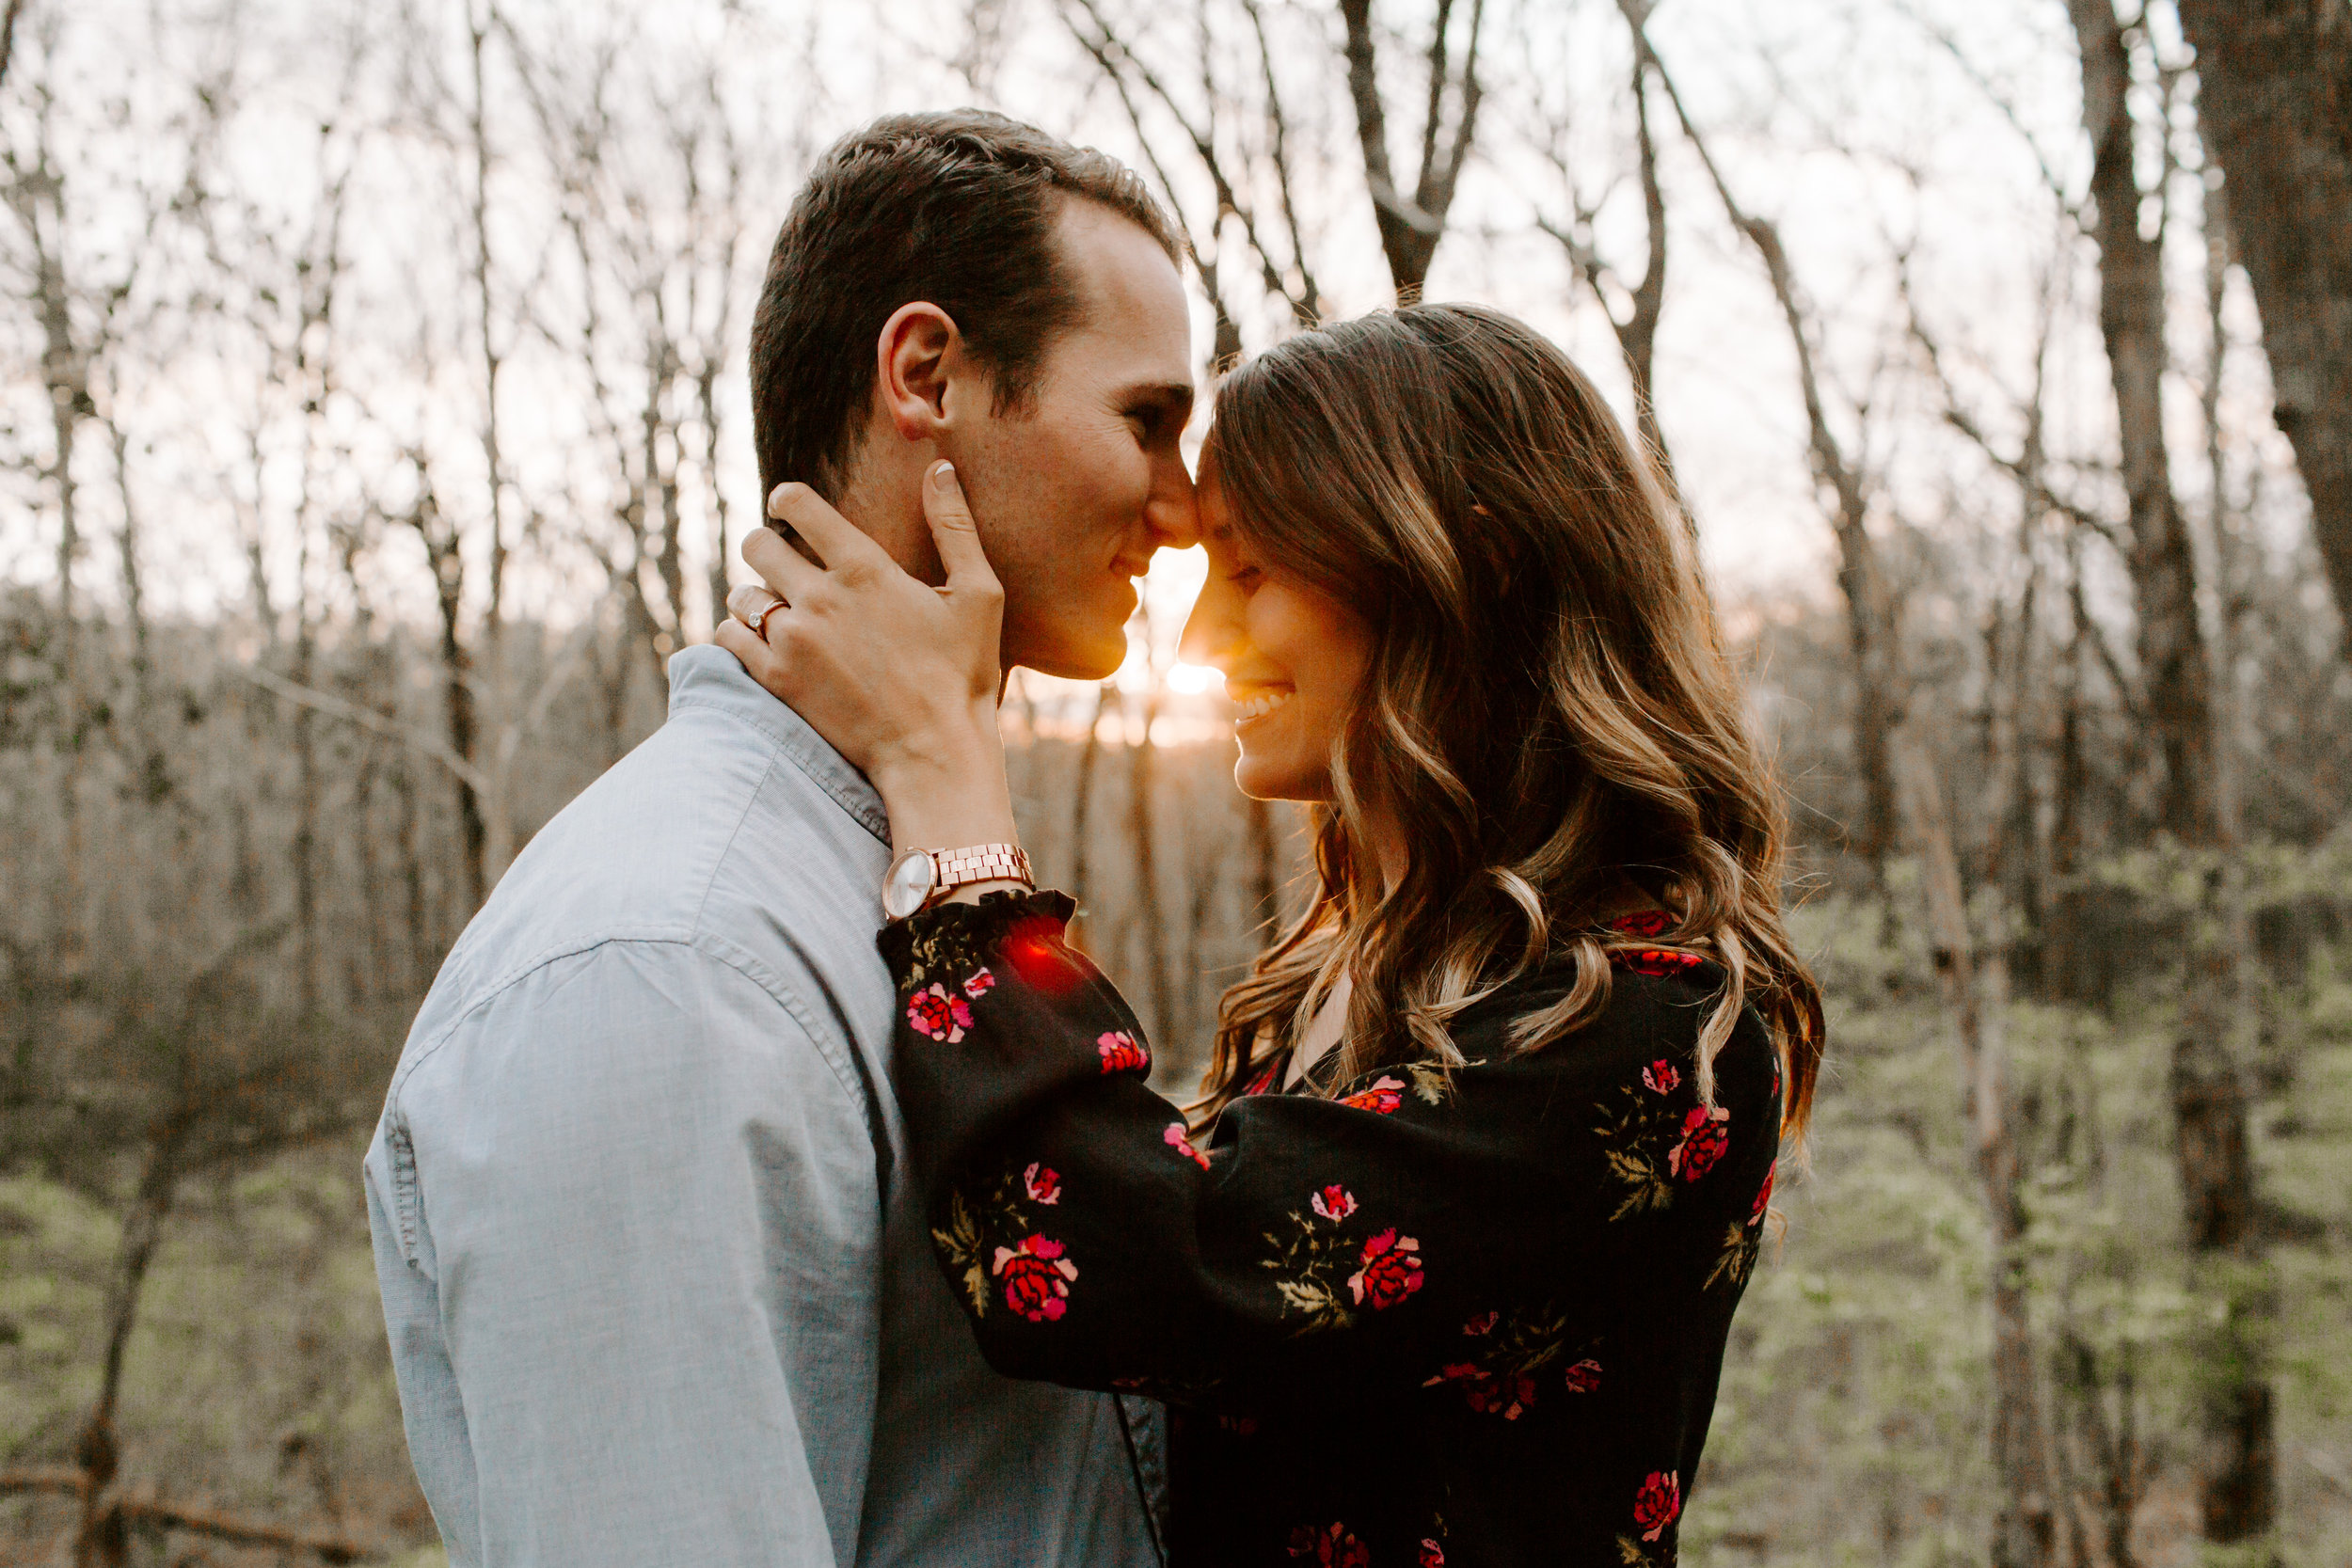 2018.03.16_kayleematt_nashville_engagement_elissavossphotography_previews_27.jpg